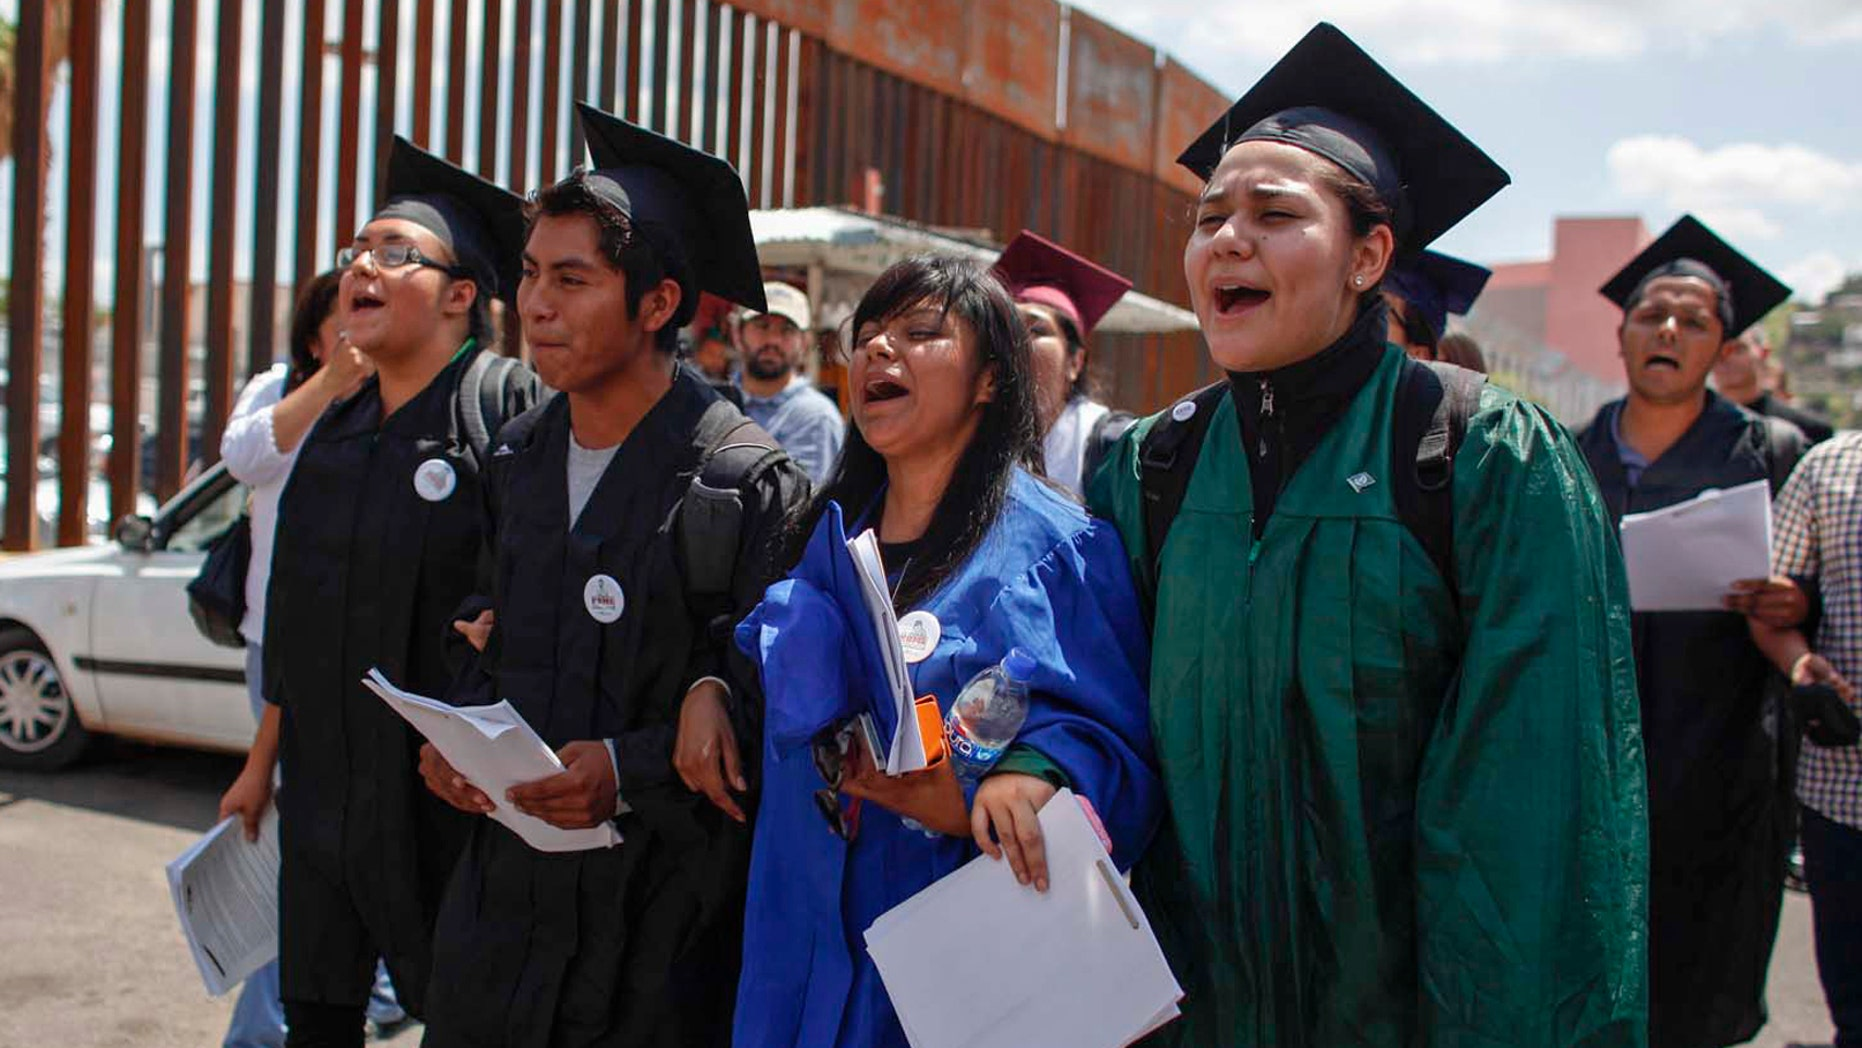 """On July 22, 2013, a group of """"Dreamers"""" marched to the U.S. port of entry in Nogales, Mexico, where they requested humanitarian parole."""